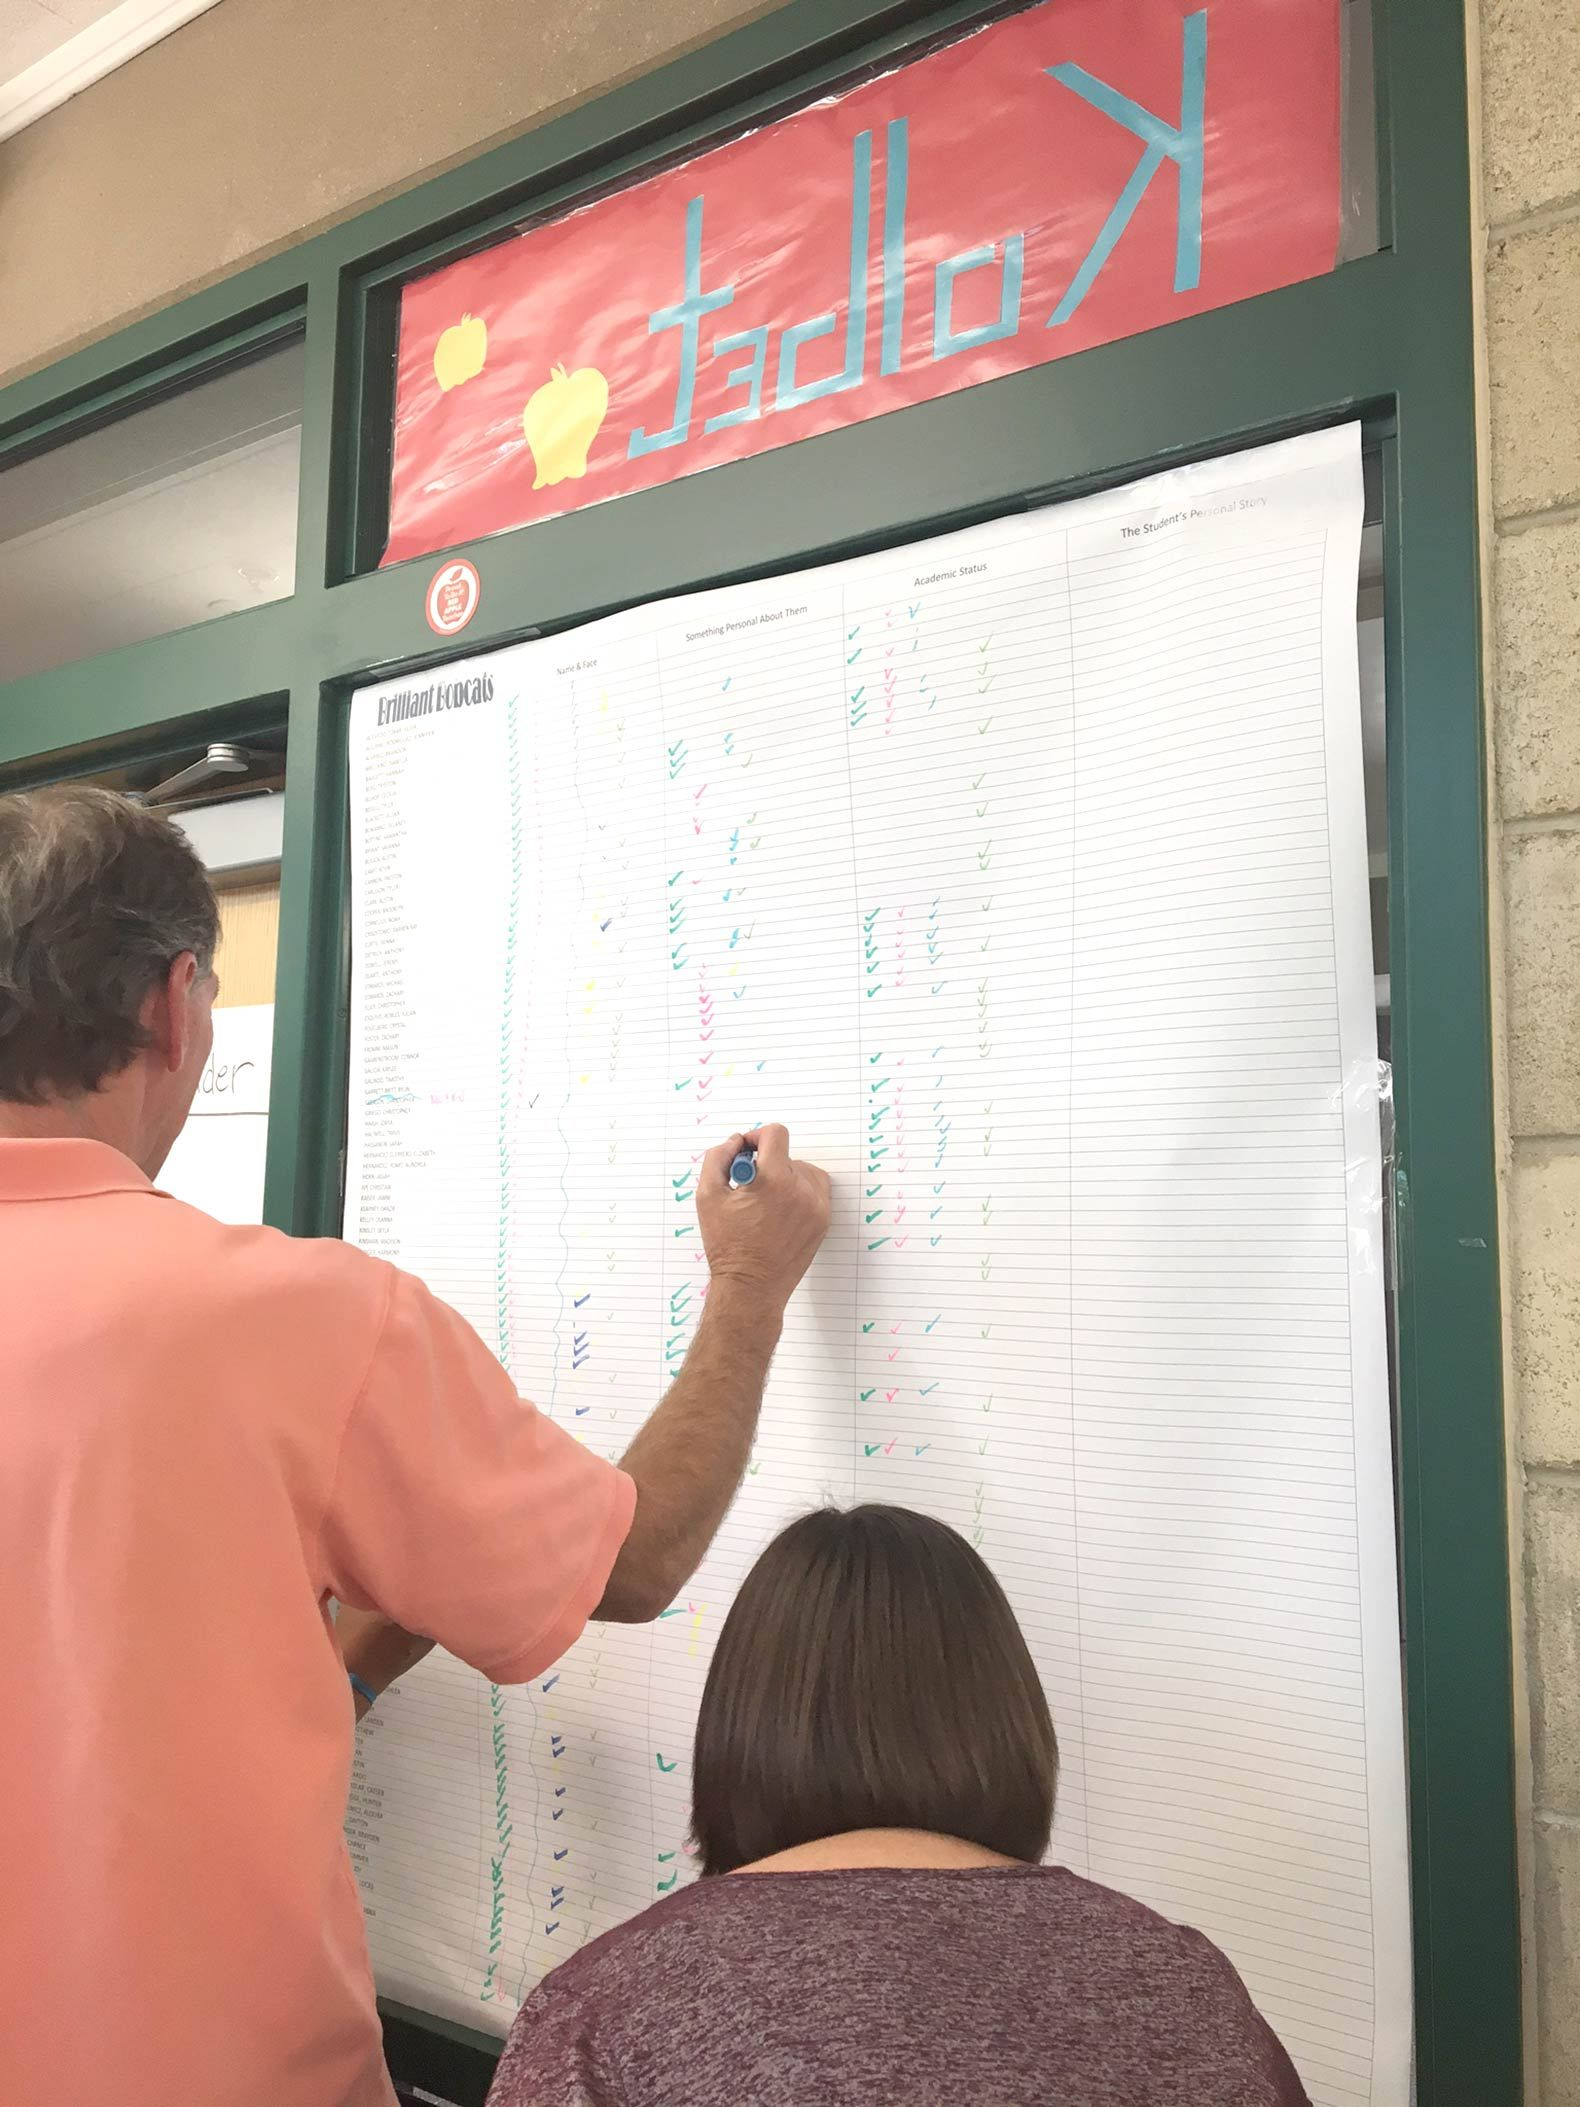 Cold Springs teachers use rosters to note what they know about their students.